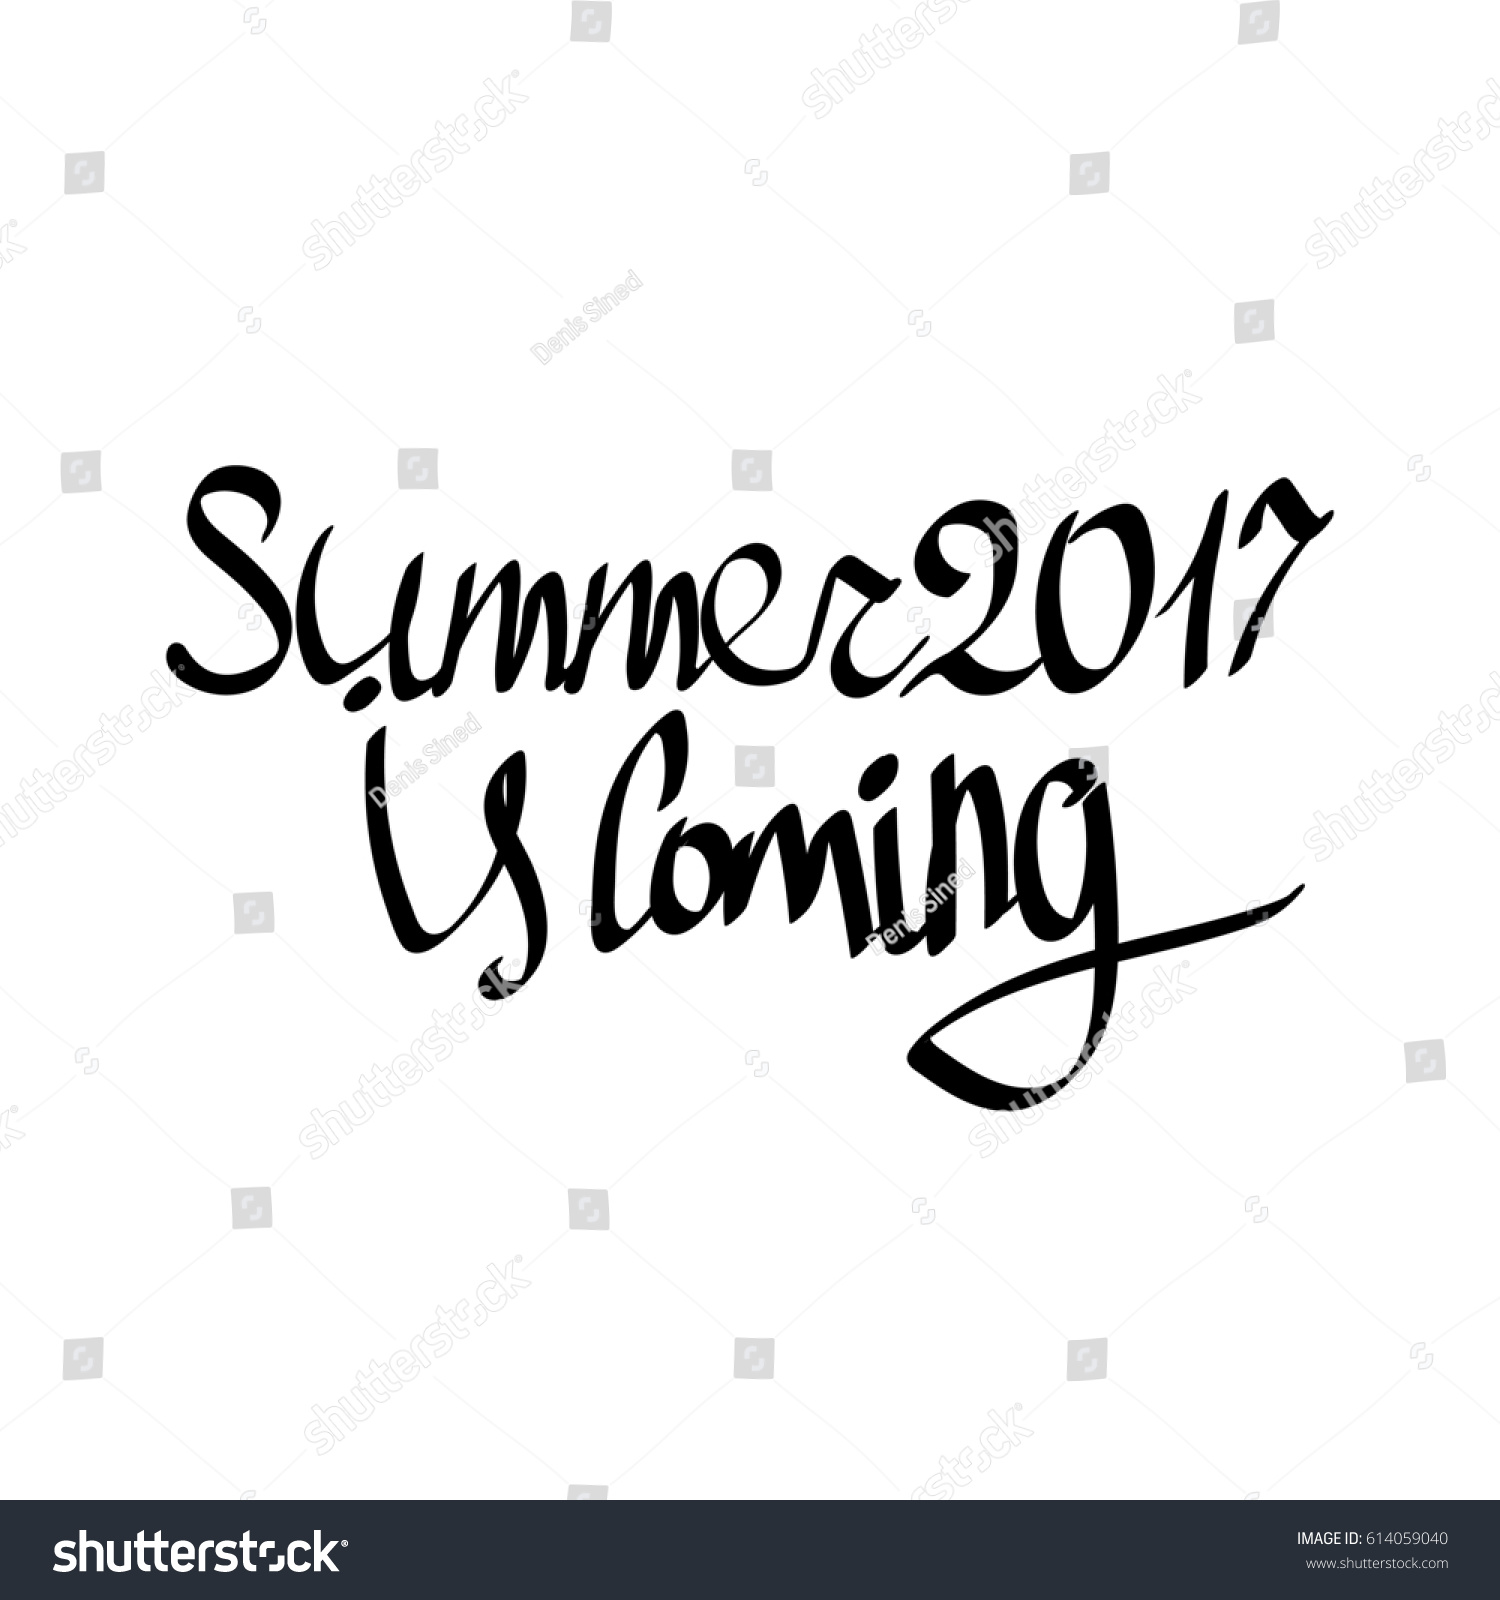 Summer 2017 Coming Isolated Calligraphy Lettering Stock